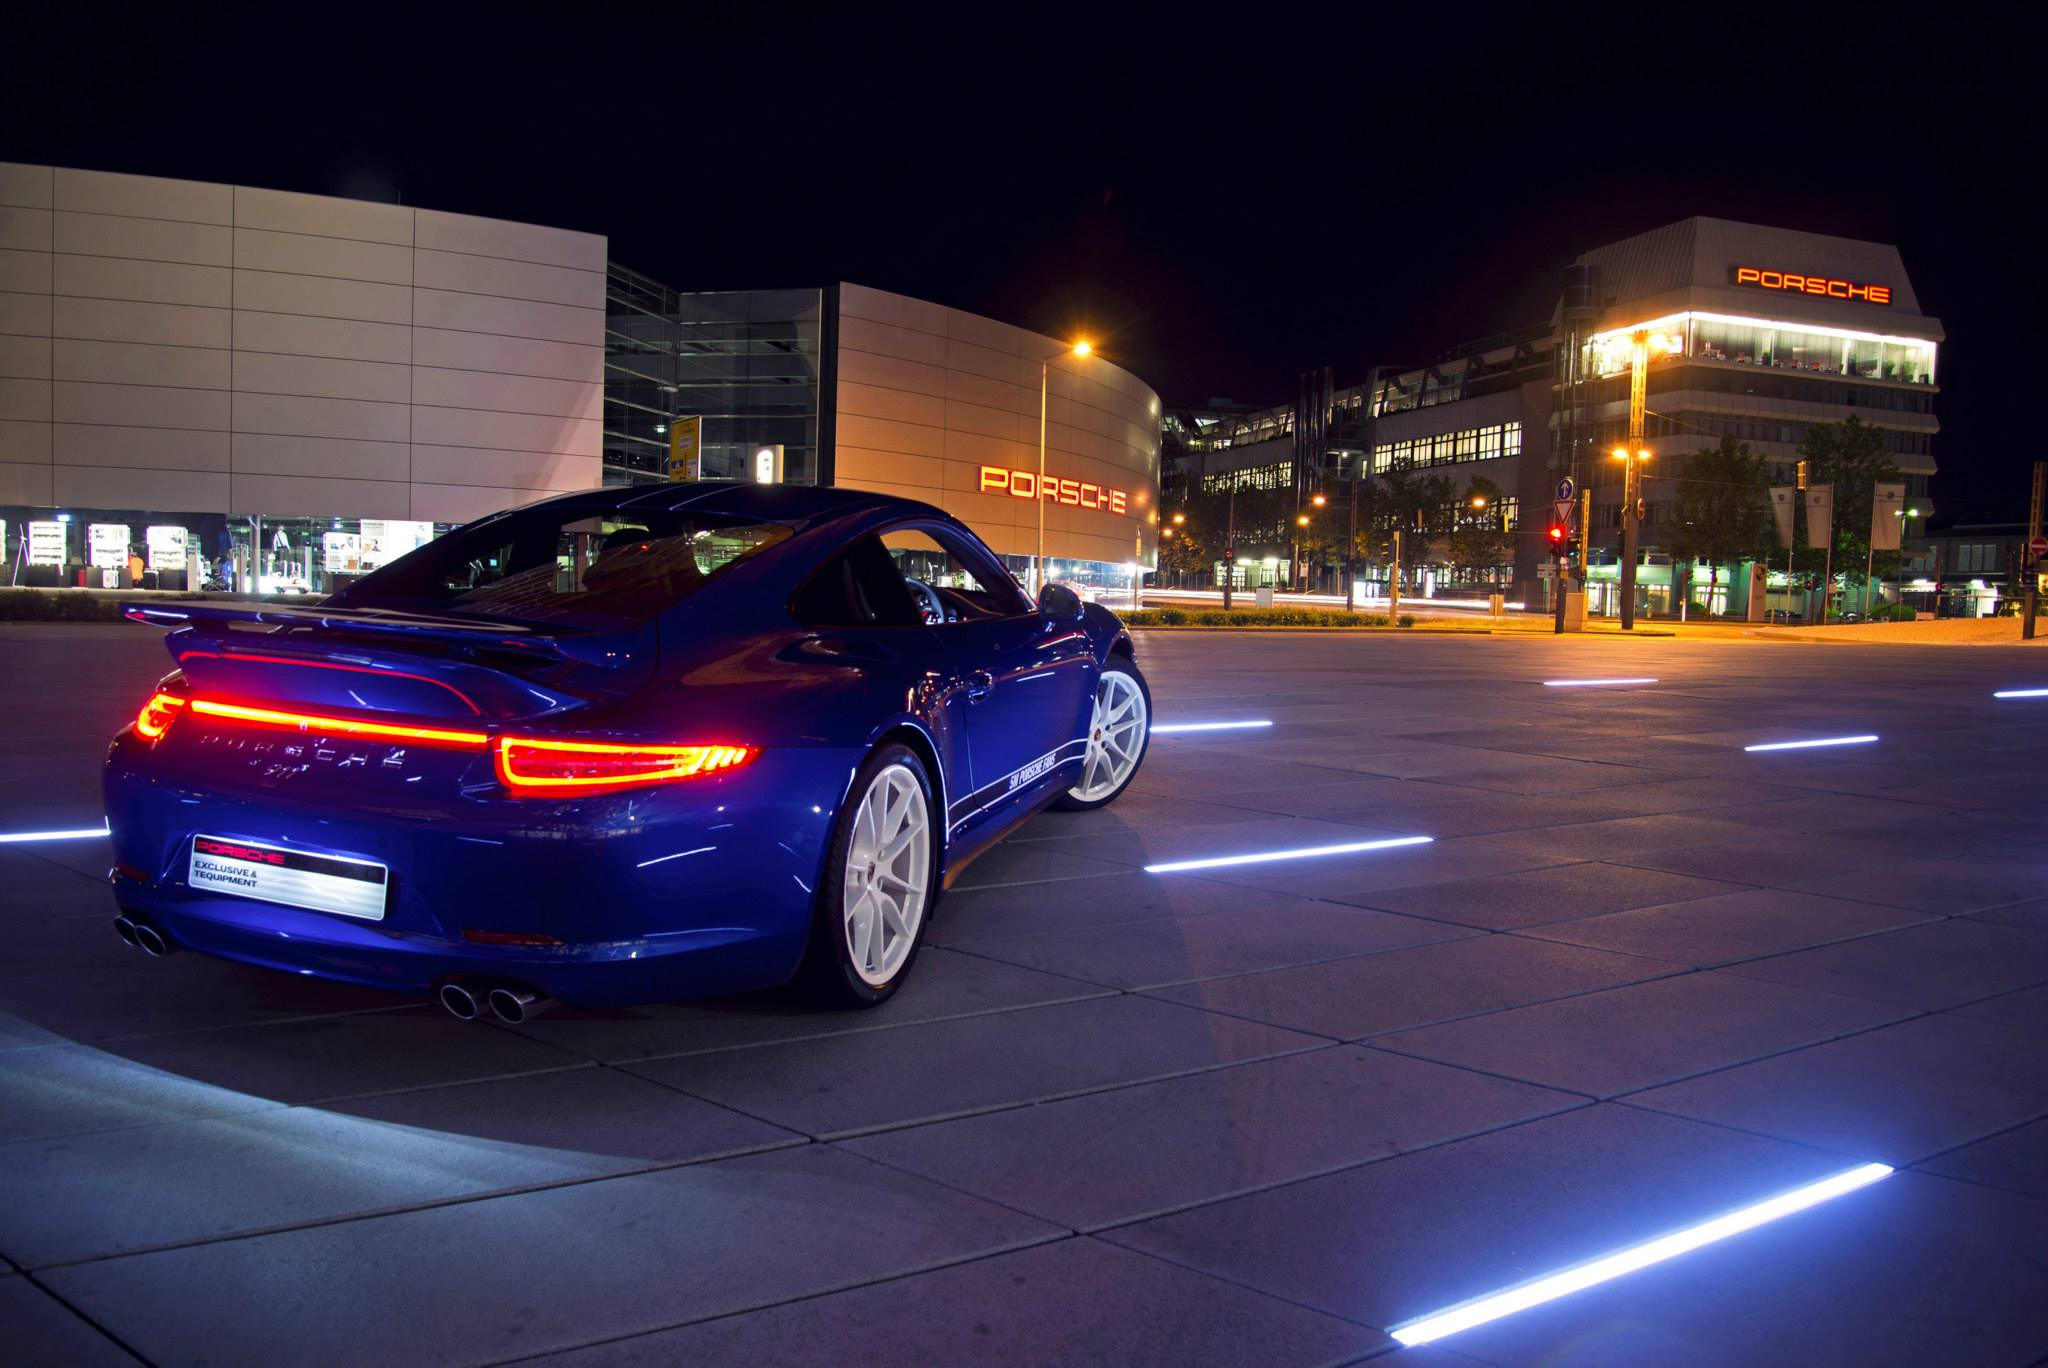 Porsche lets Facebook fans design a special edition 911 Carrera 4S ...